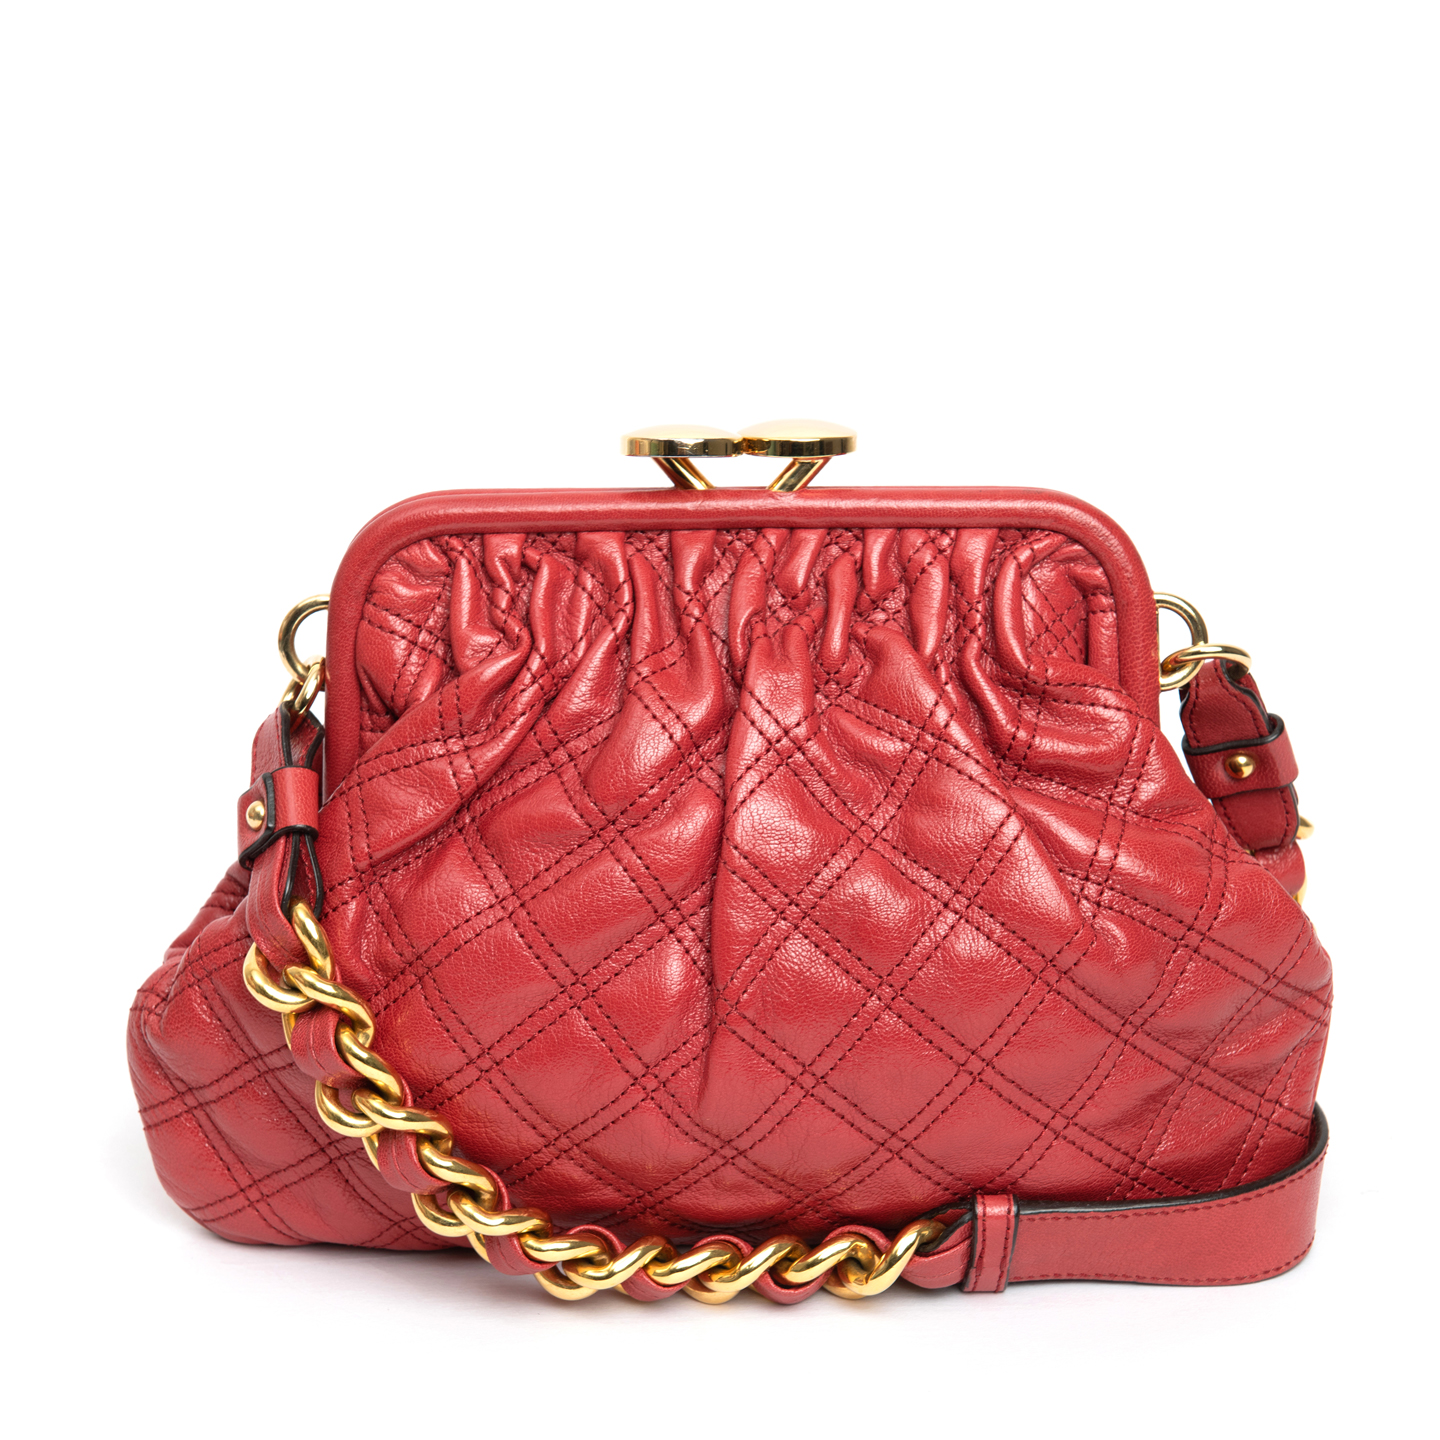 Marc Jacobs Red Quilted Leather Mini Stam Shoulder Bag 01